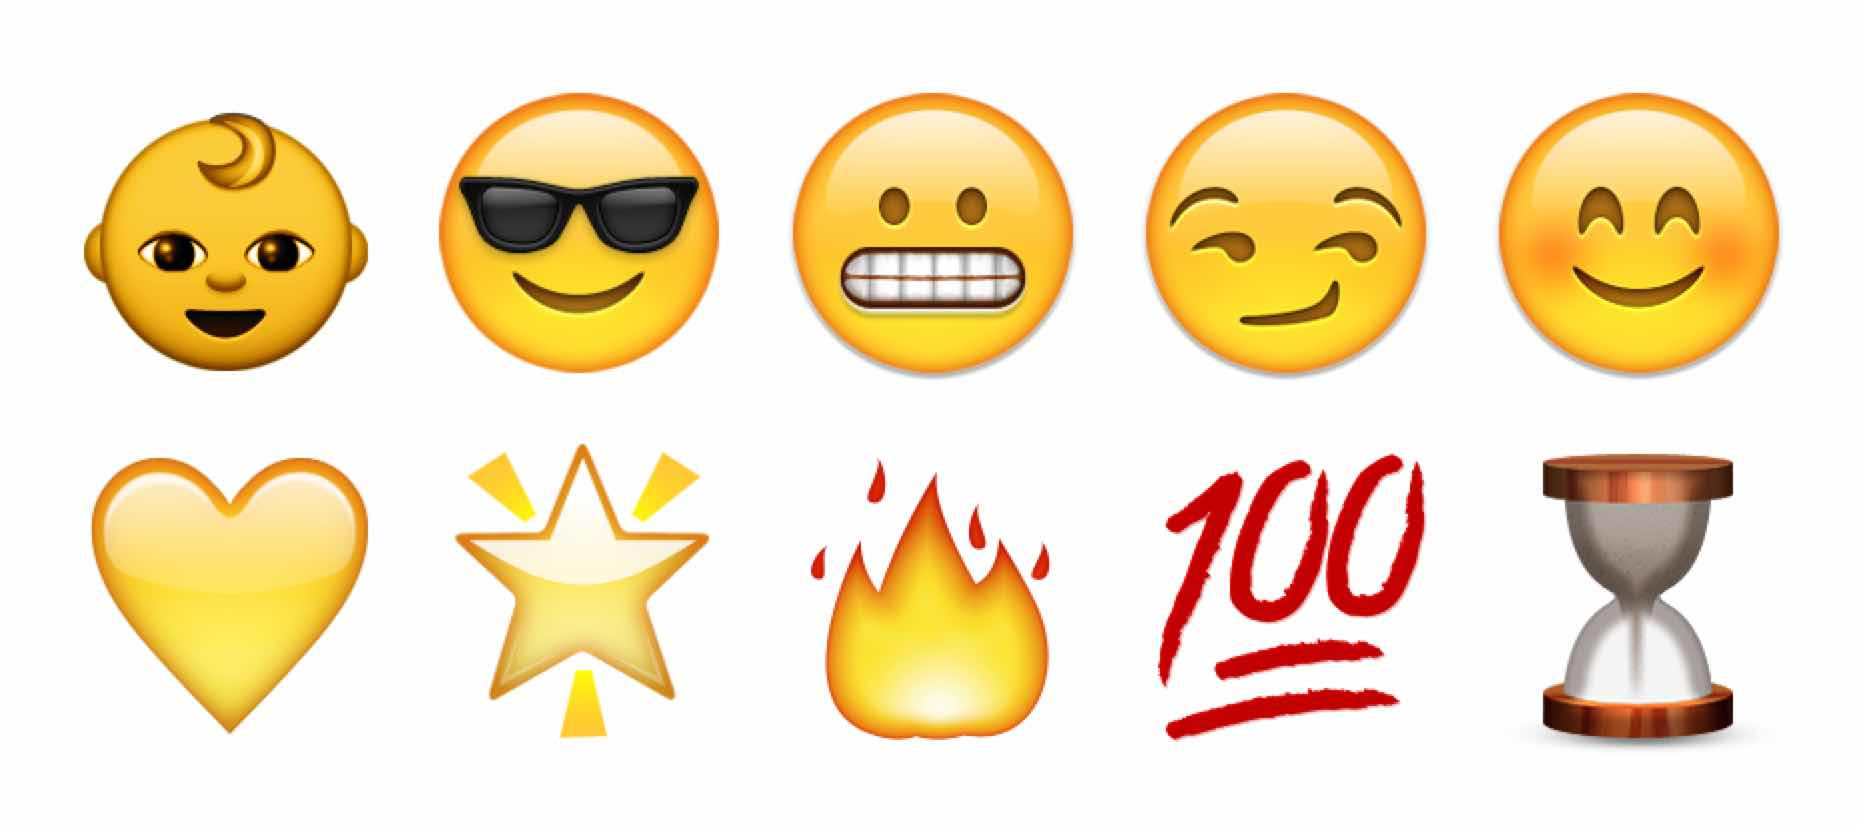 Snapchat Emoji Meanings Friend Emojis